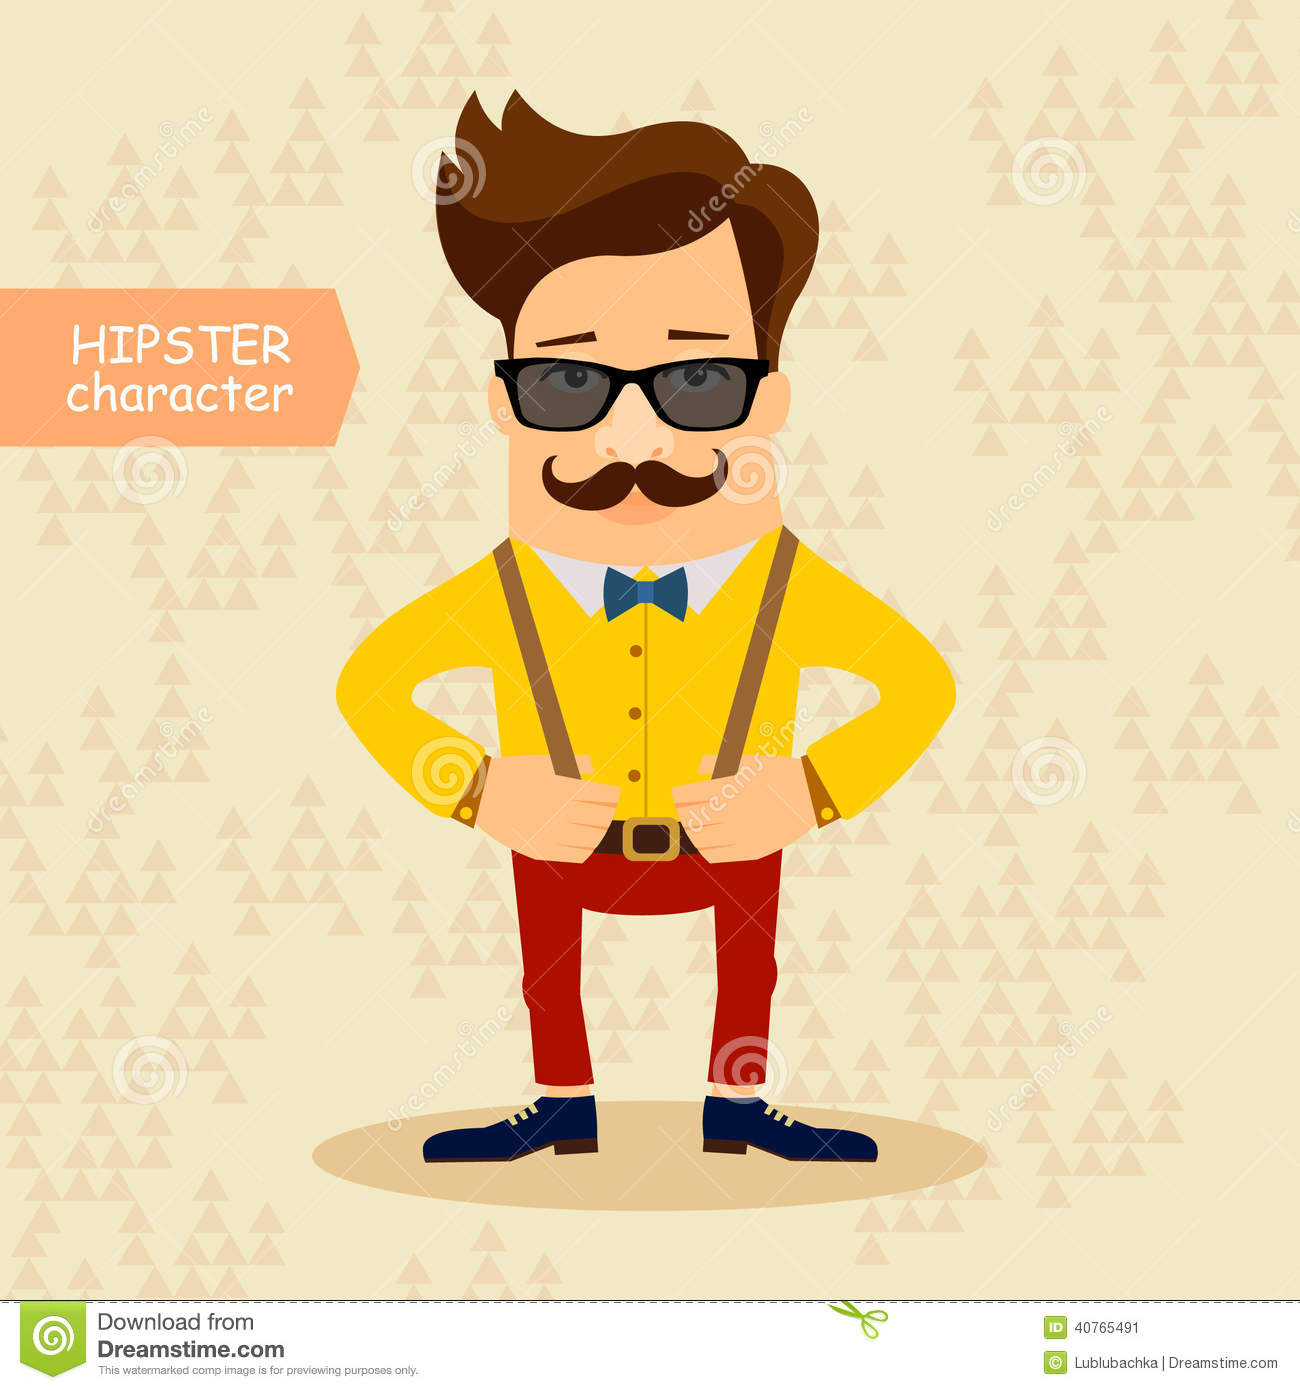 Animated Character Design In Illustrator : Hipster cartoon character vintage fashion style vector